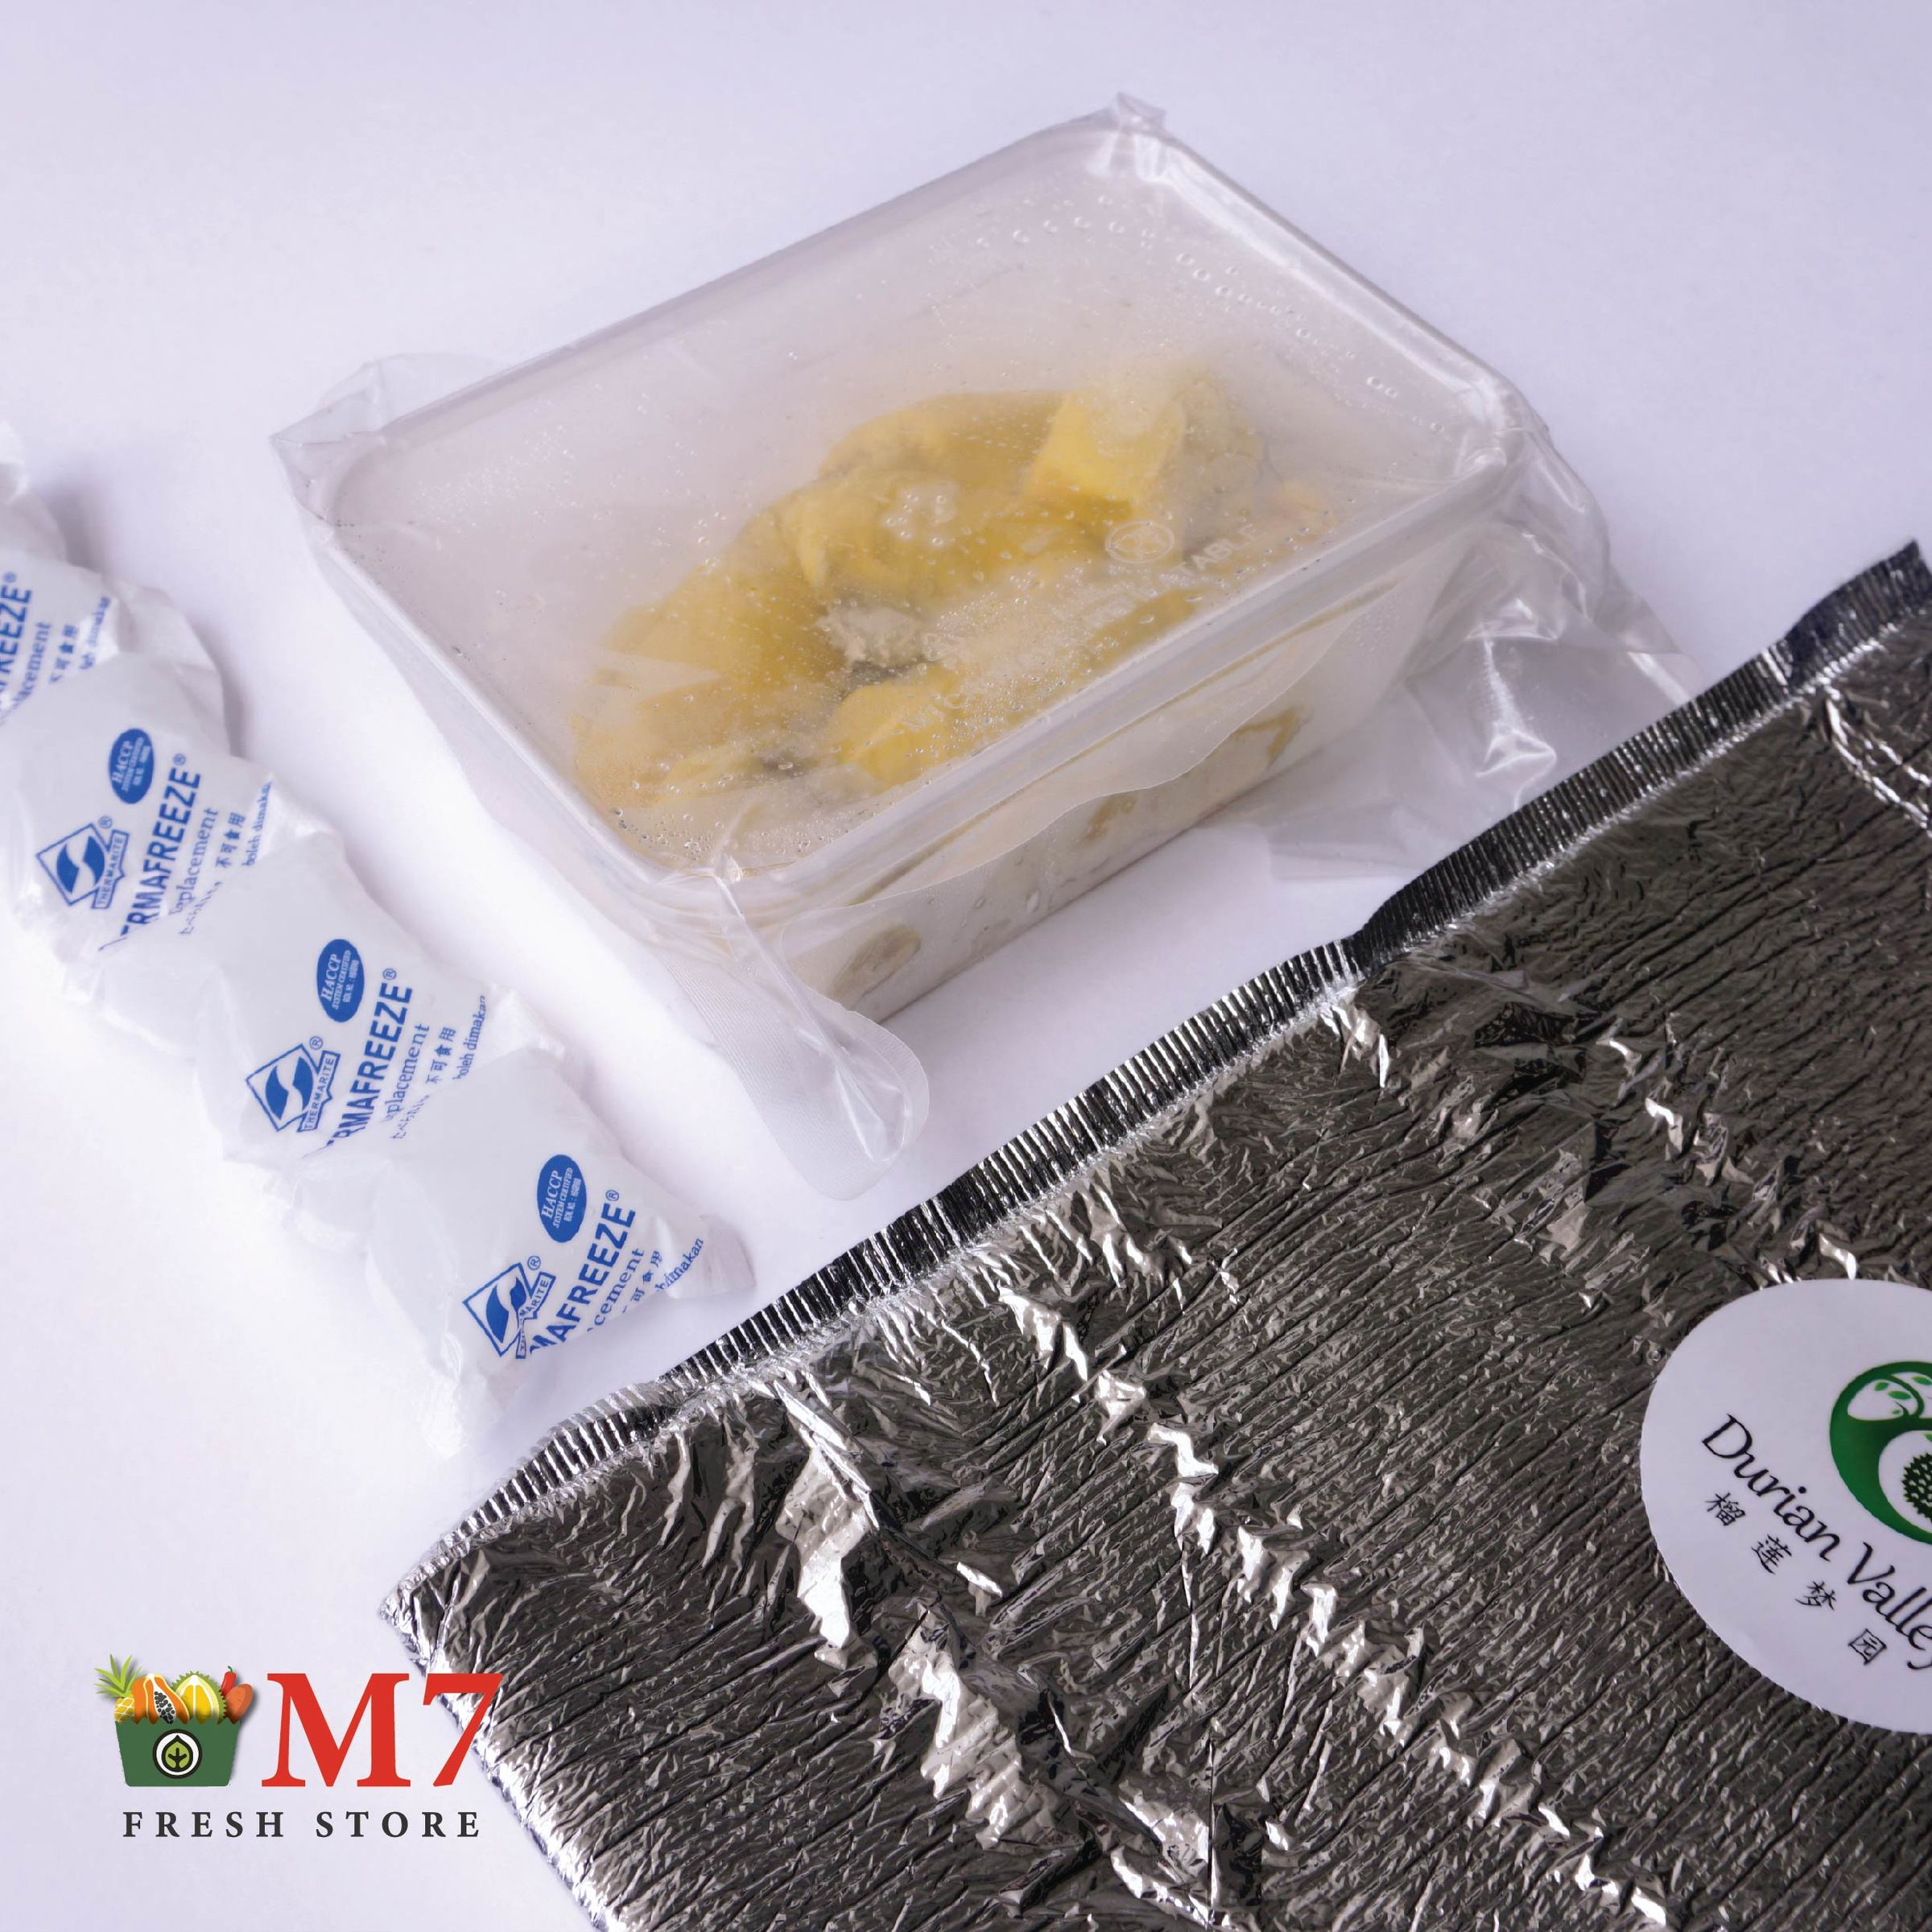 RajaKunyitPackaging-03.jpg